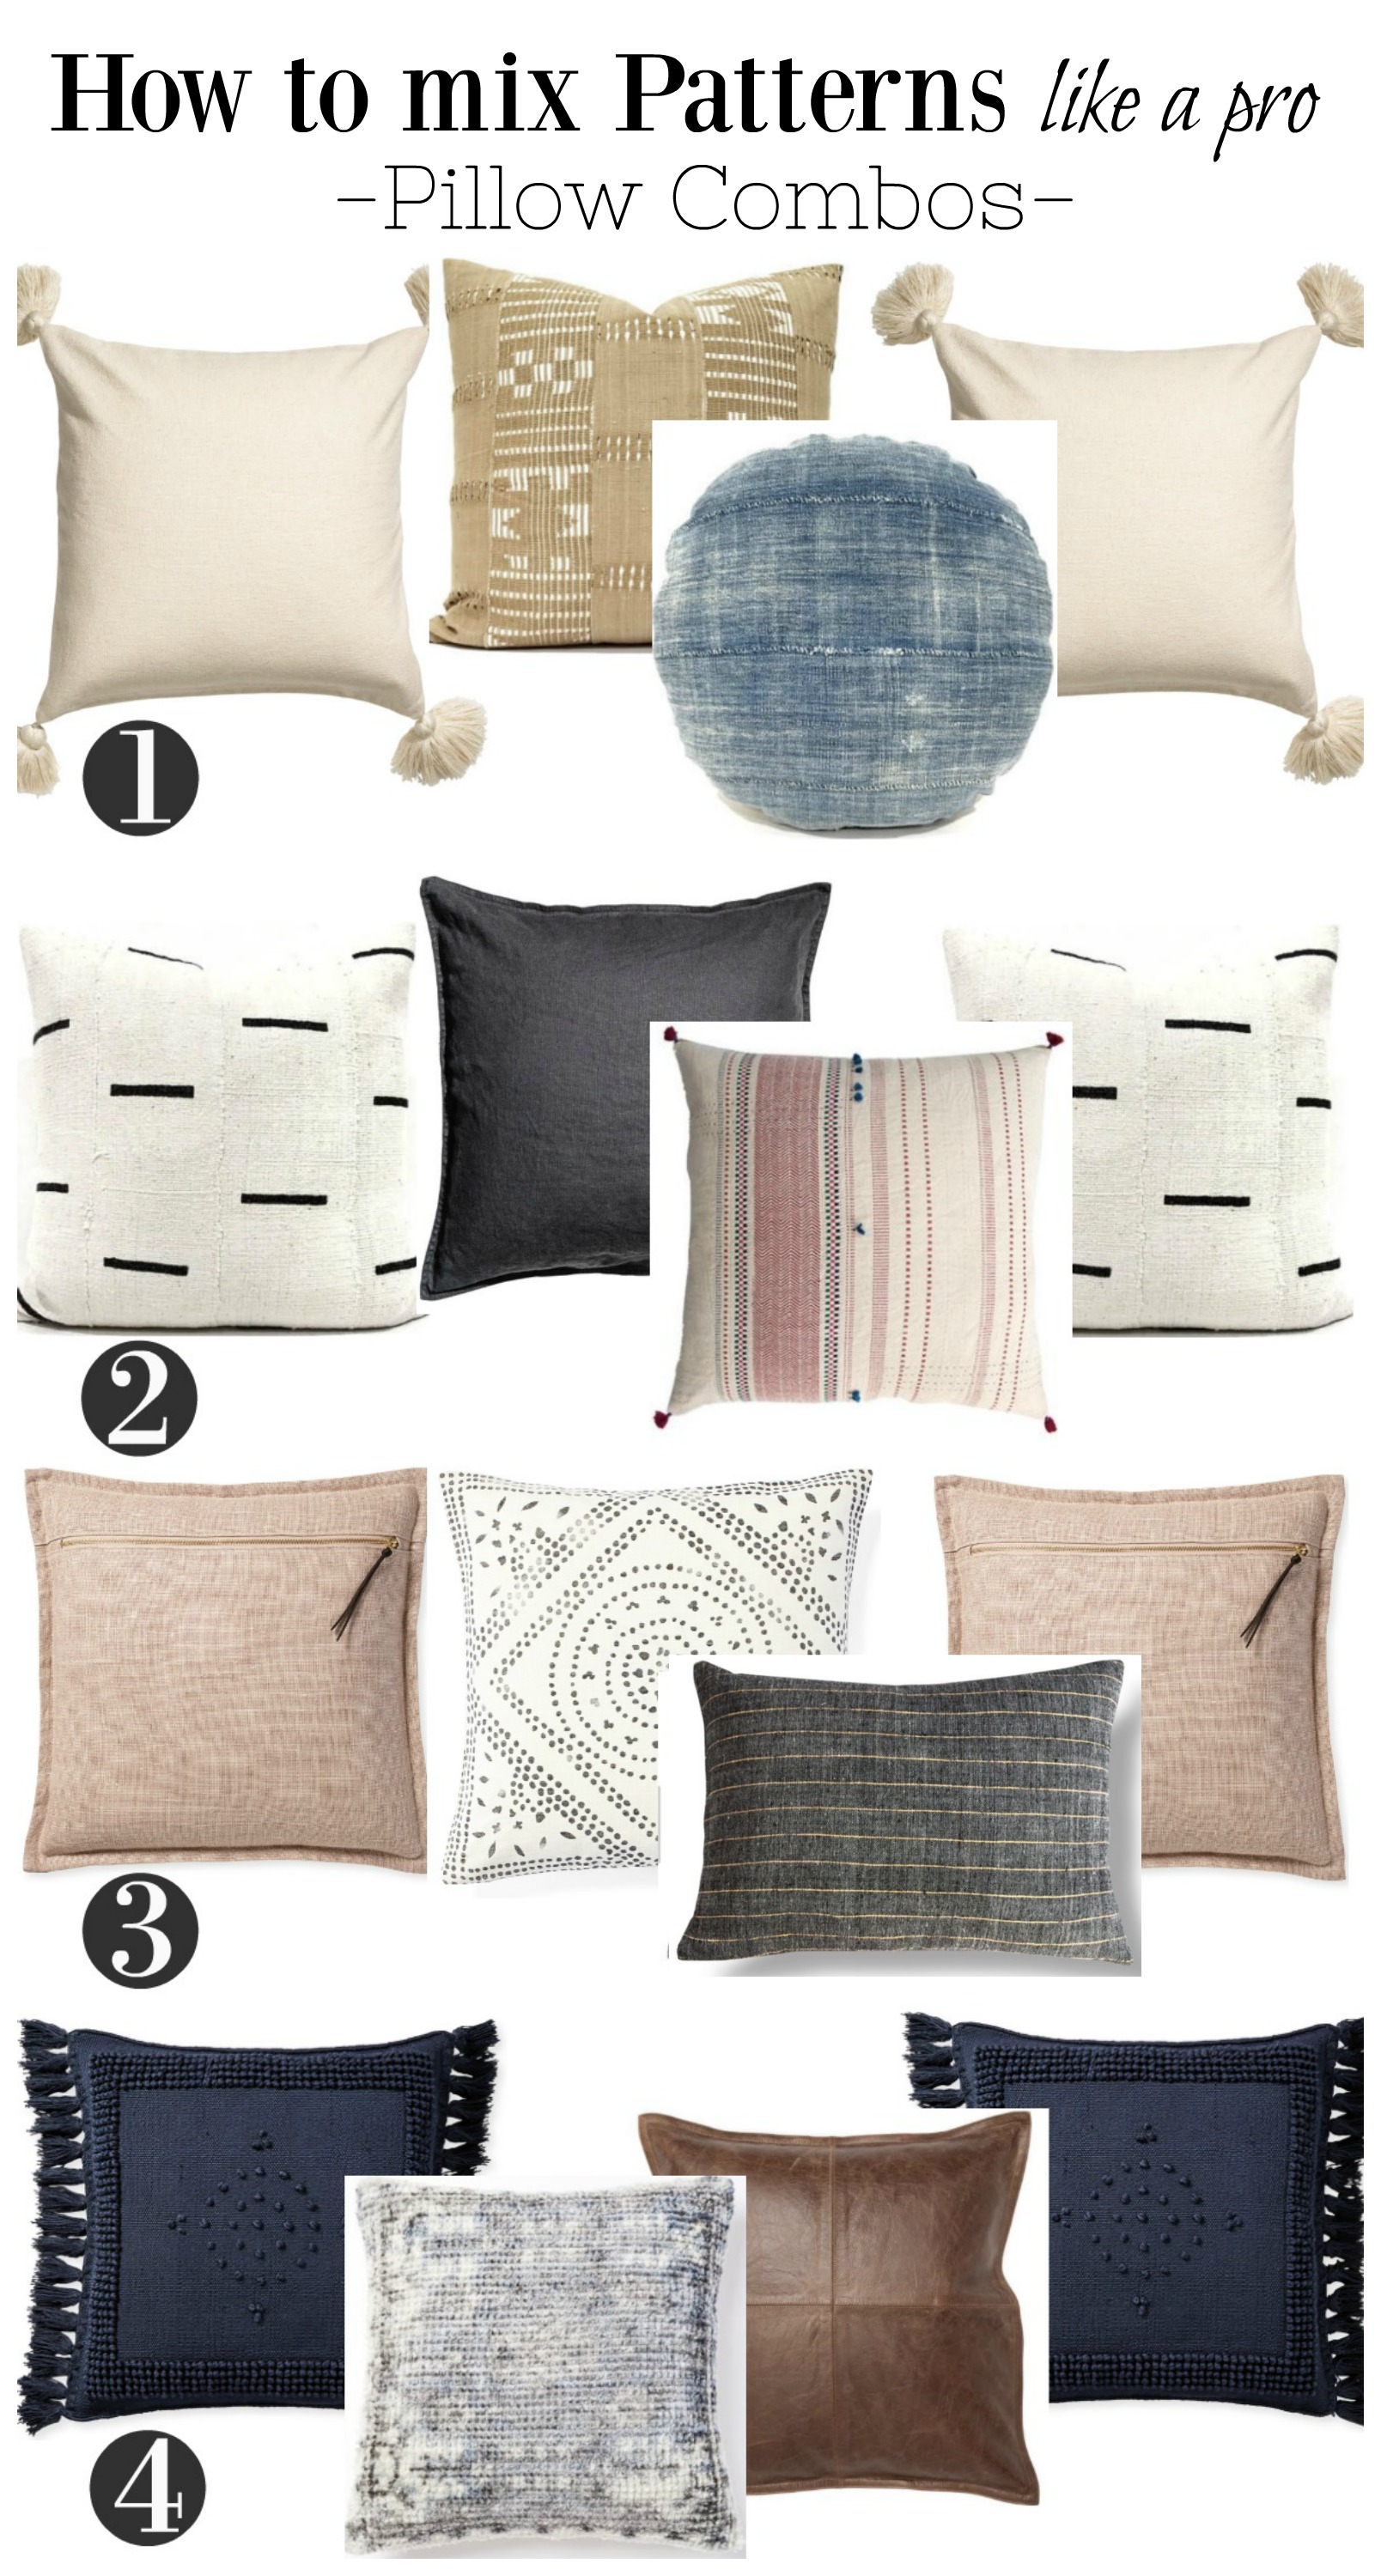 How to pick the Right Pillows! Mixing Pattern Tips